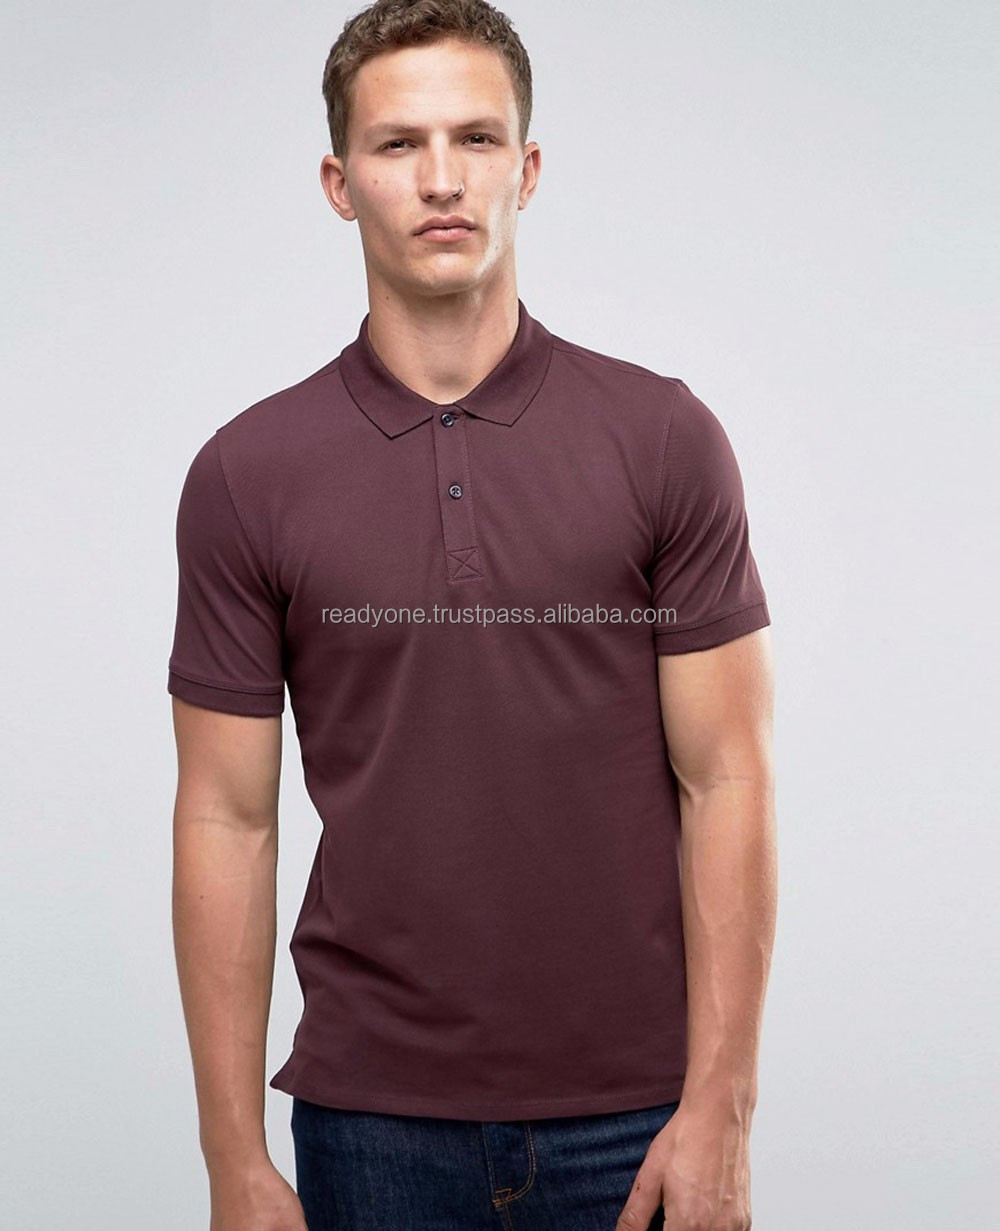 High quality adults short sleeve plain mixed sizes stock custom black 200g 100% pique cotton polo t